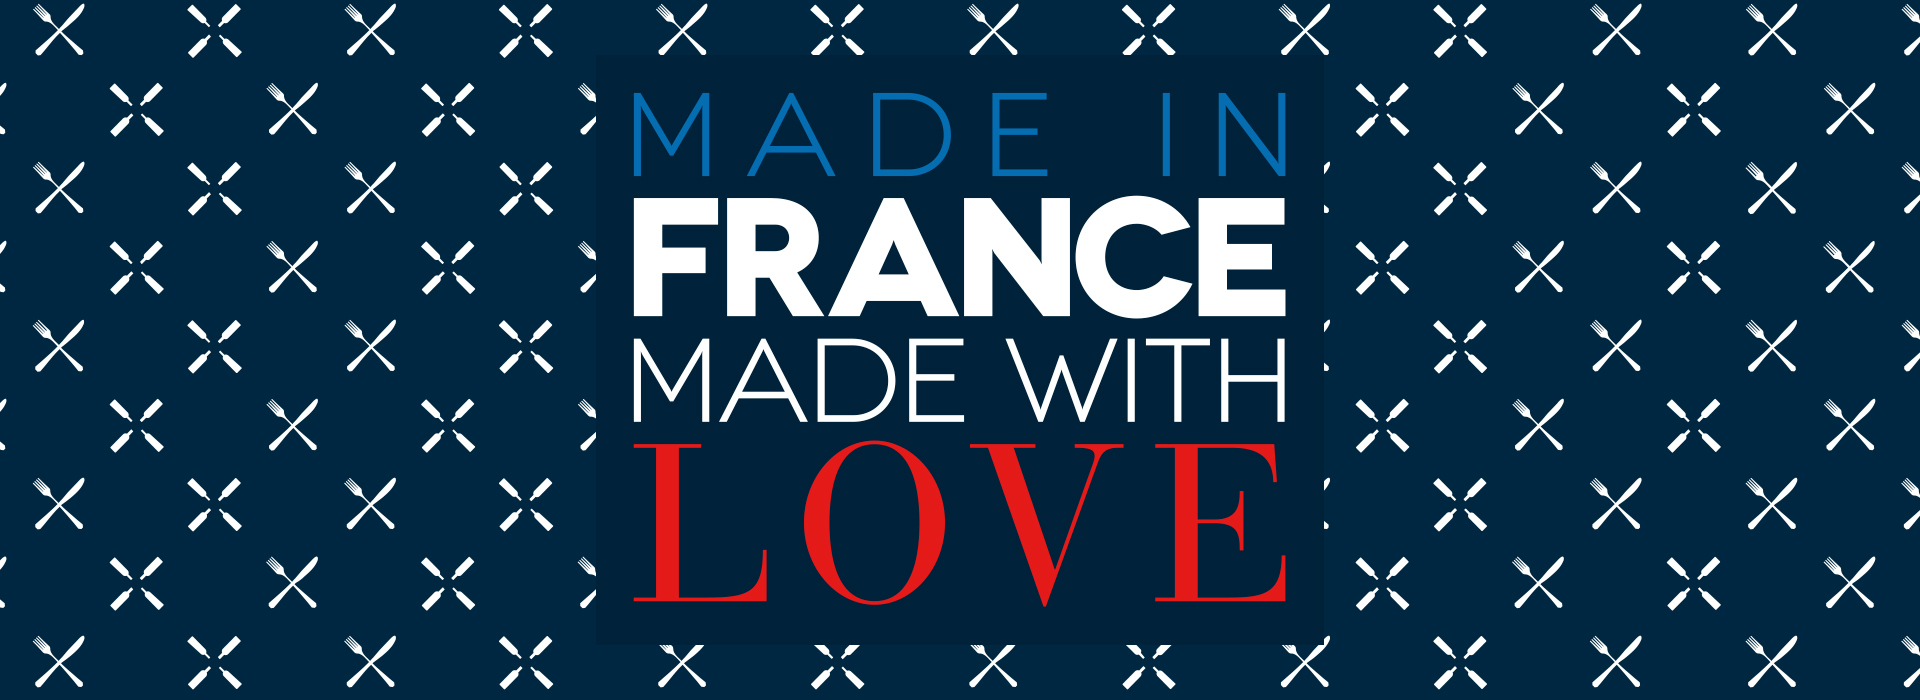 Key visual : Made in France Made with Love